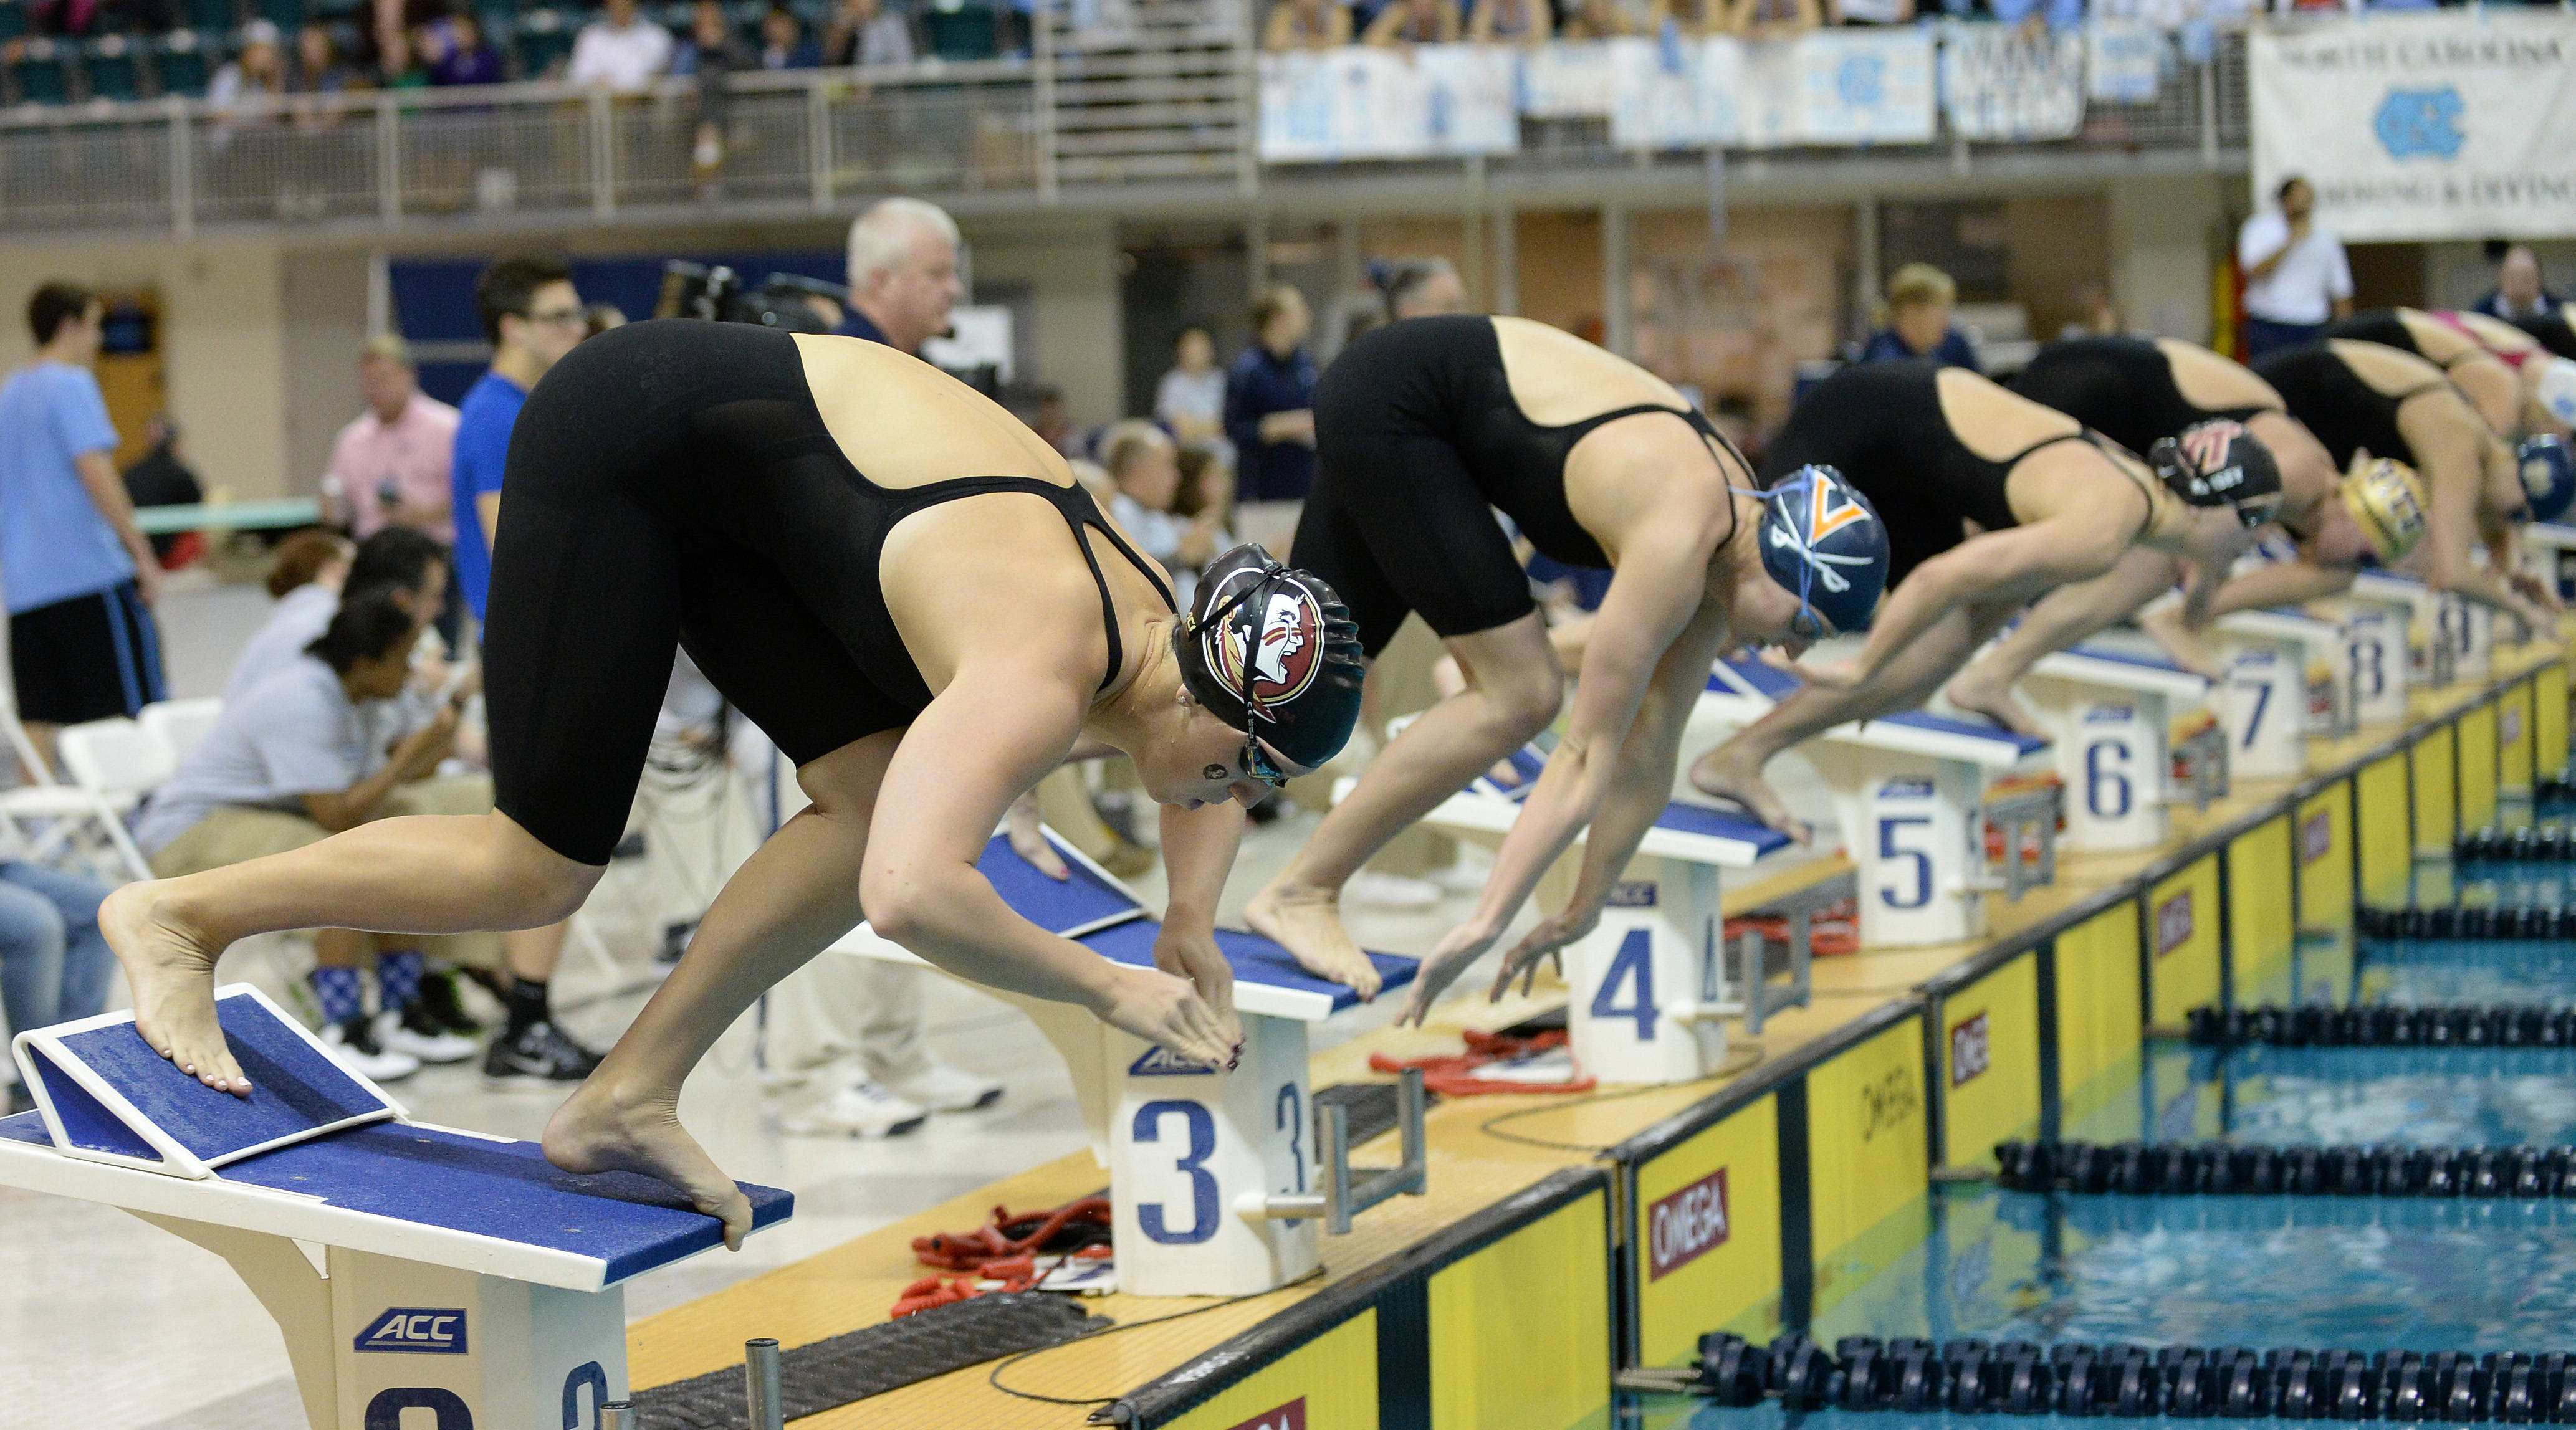 Natalie Pierce takes off in the 200 breast - Mitch White